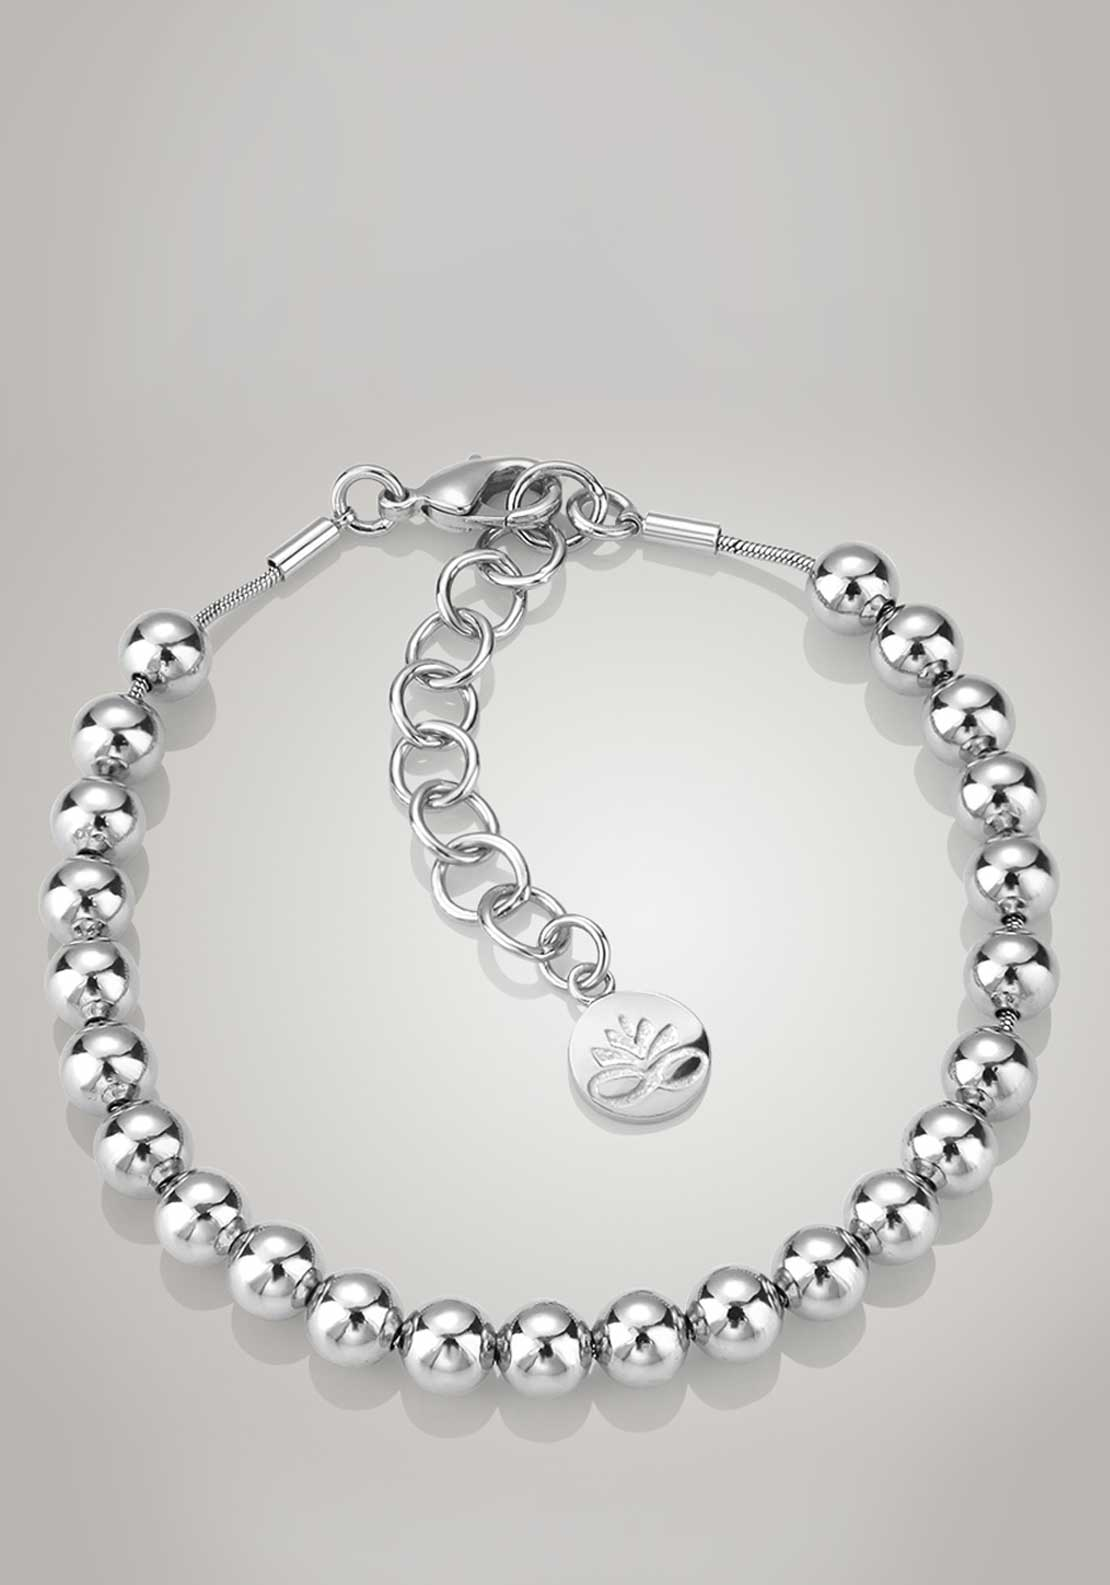 Newbridge Silverware Ti Amo Collection Small Bead Bracelet, Silver